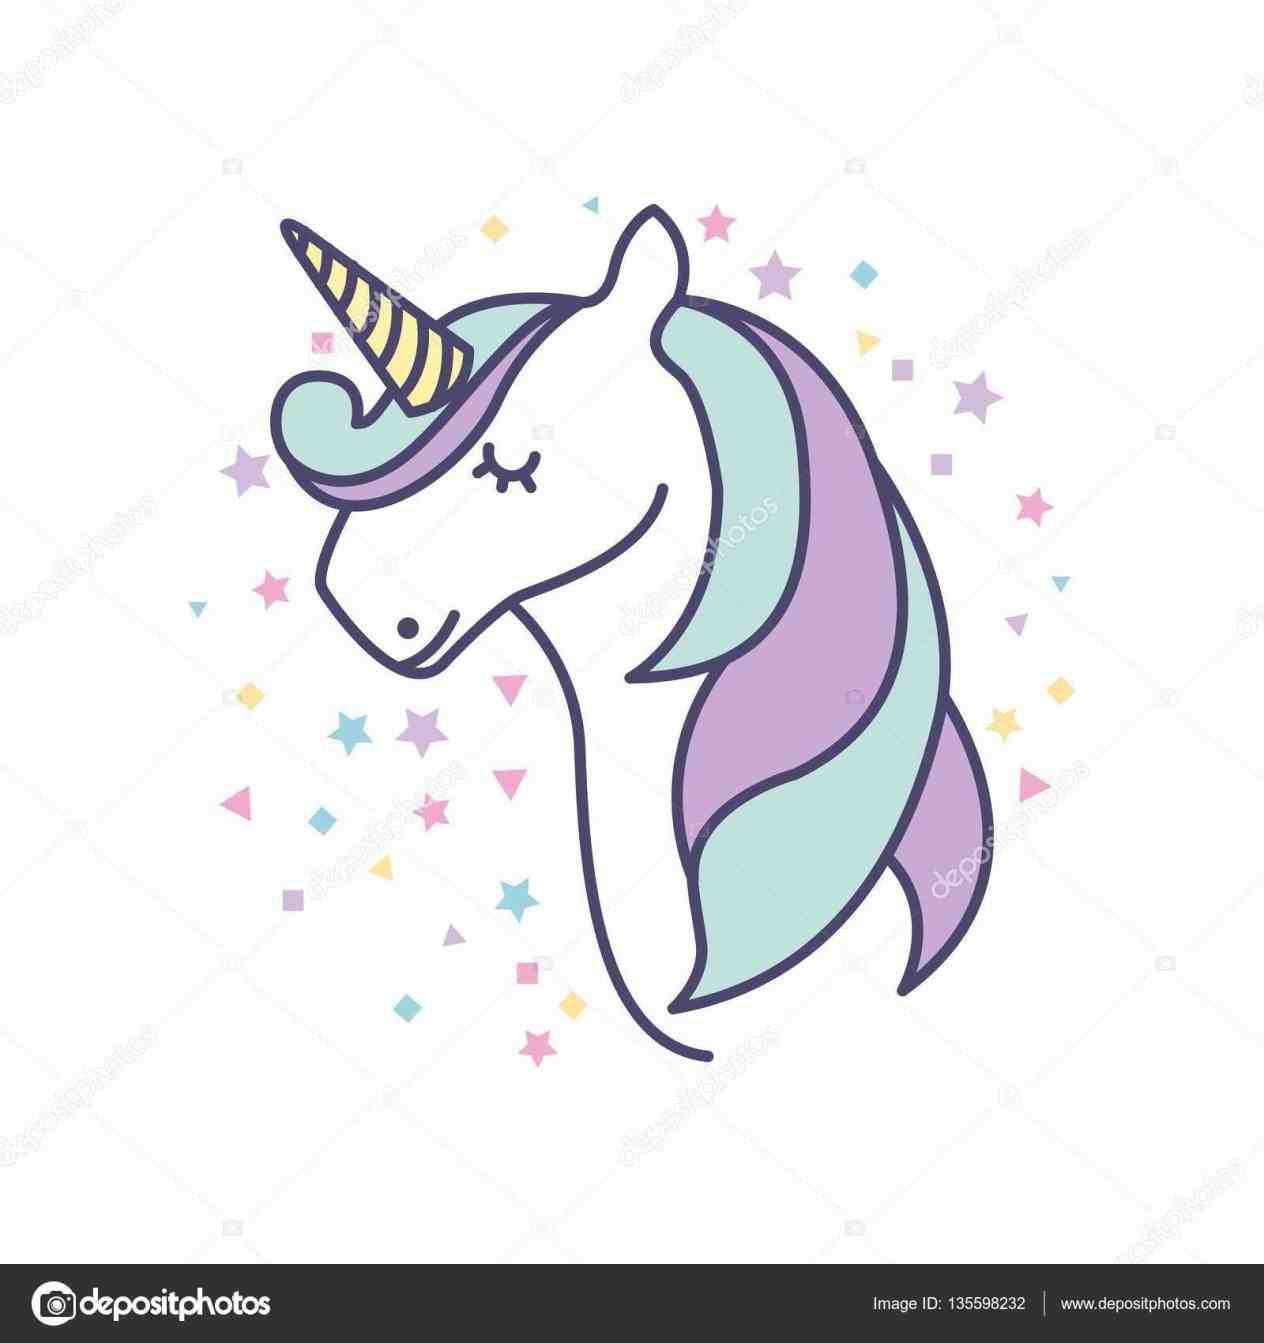 1264x1343 Pictures Cute Drawings Of Unicorns